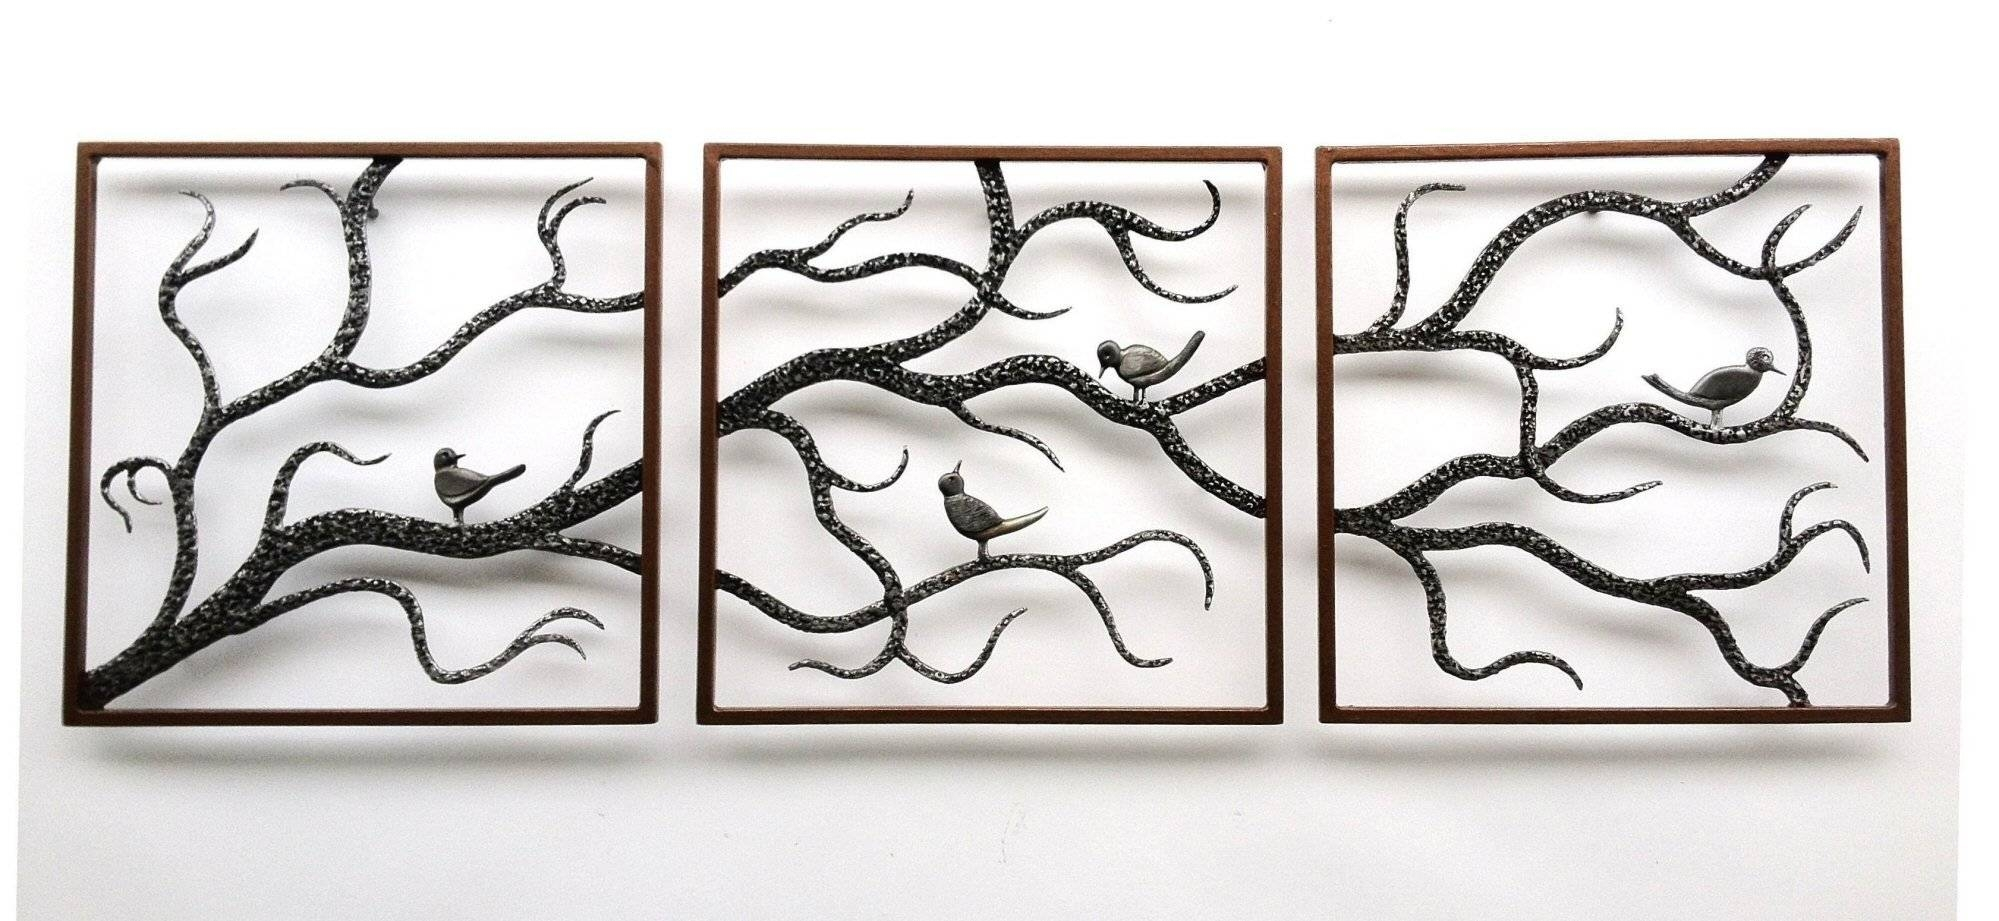 Wall Art Designs: Metal Wall Art Trees Birch Three Framed Cute With Latest Branches Metal Wall Art (View 4 of 20)